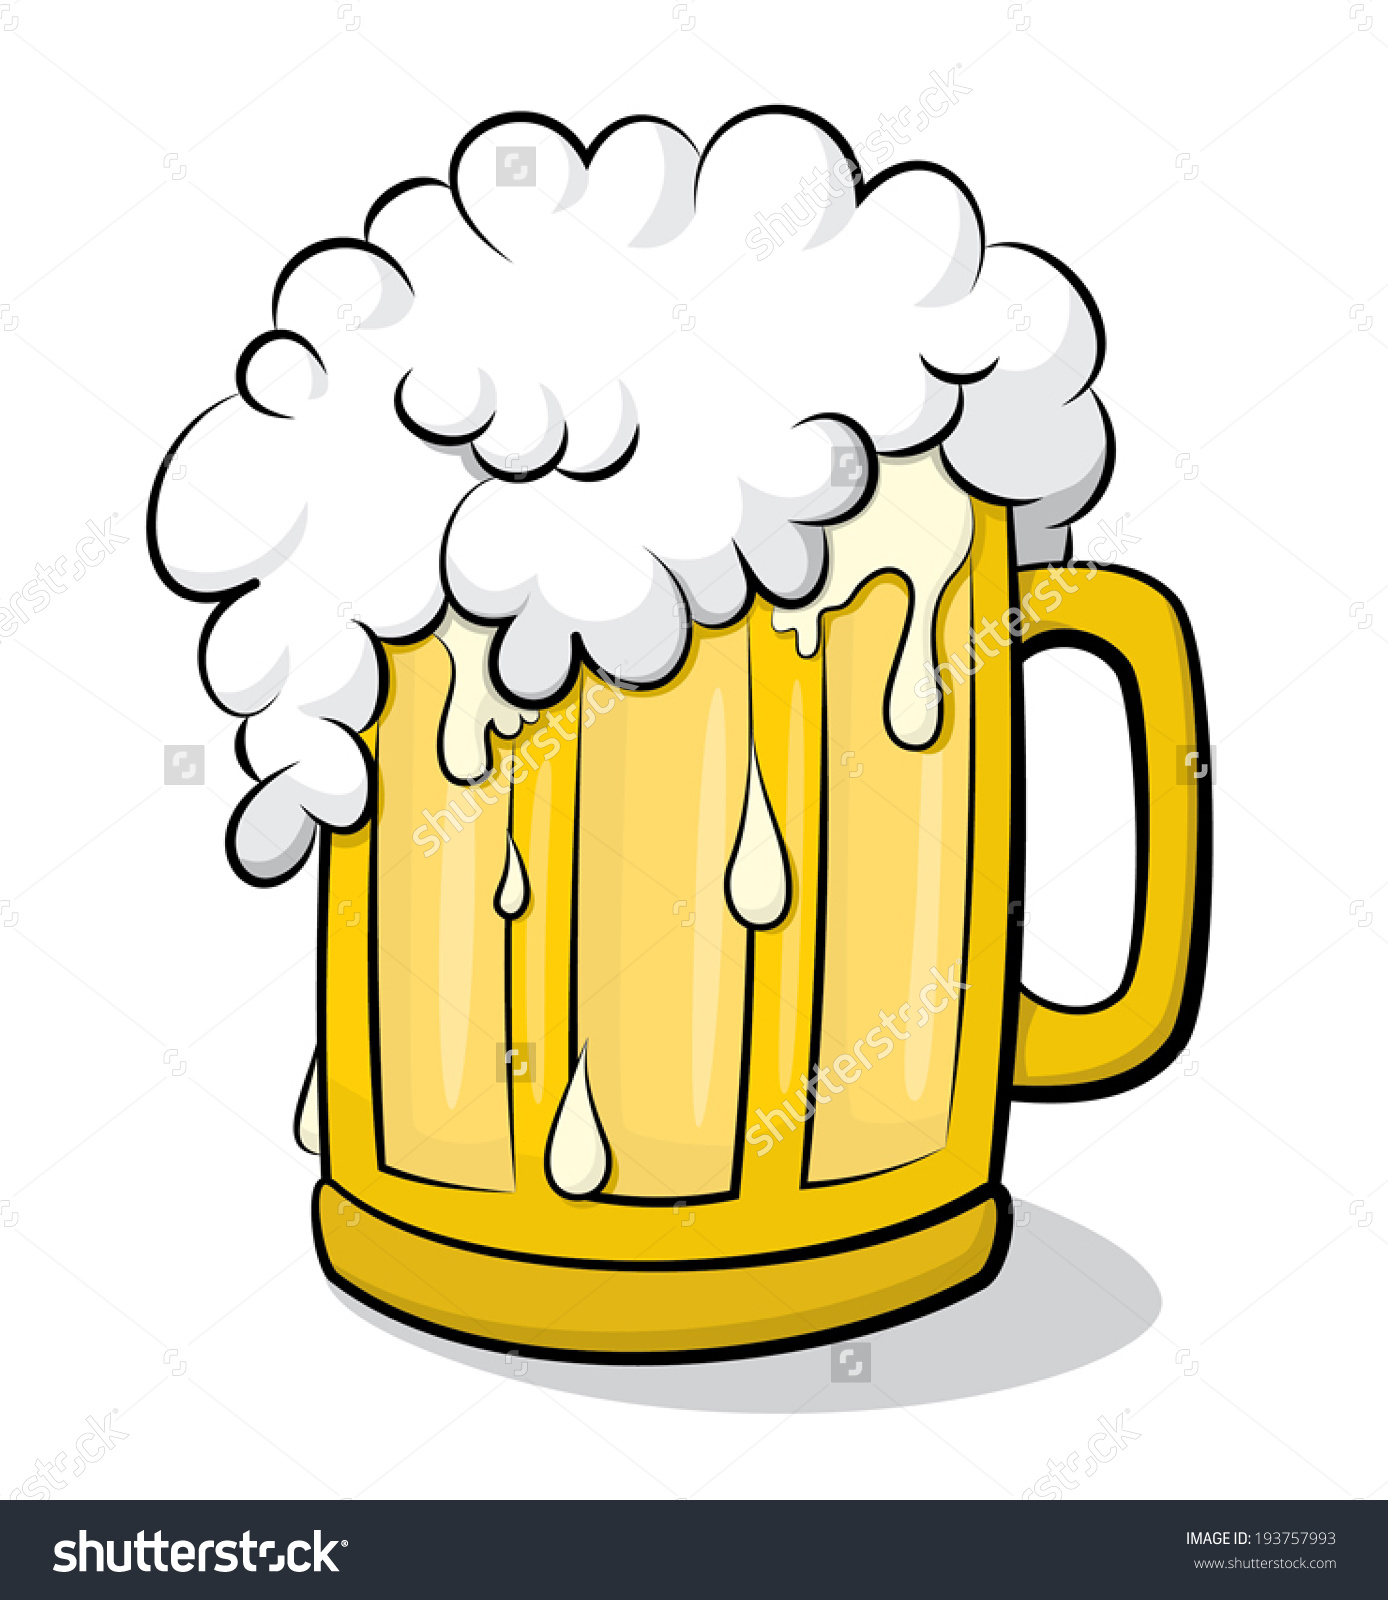 208 Beer Glass free clipart.